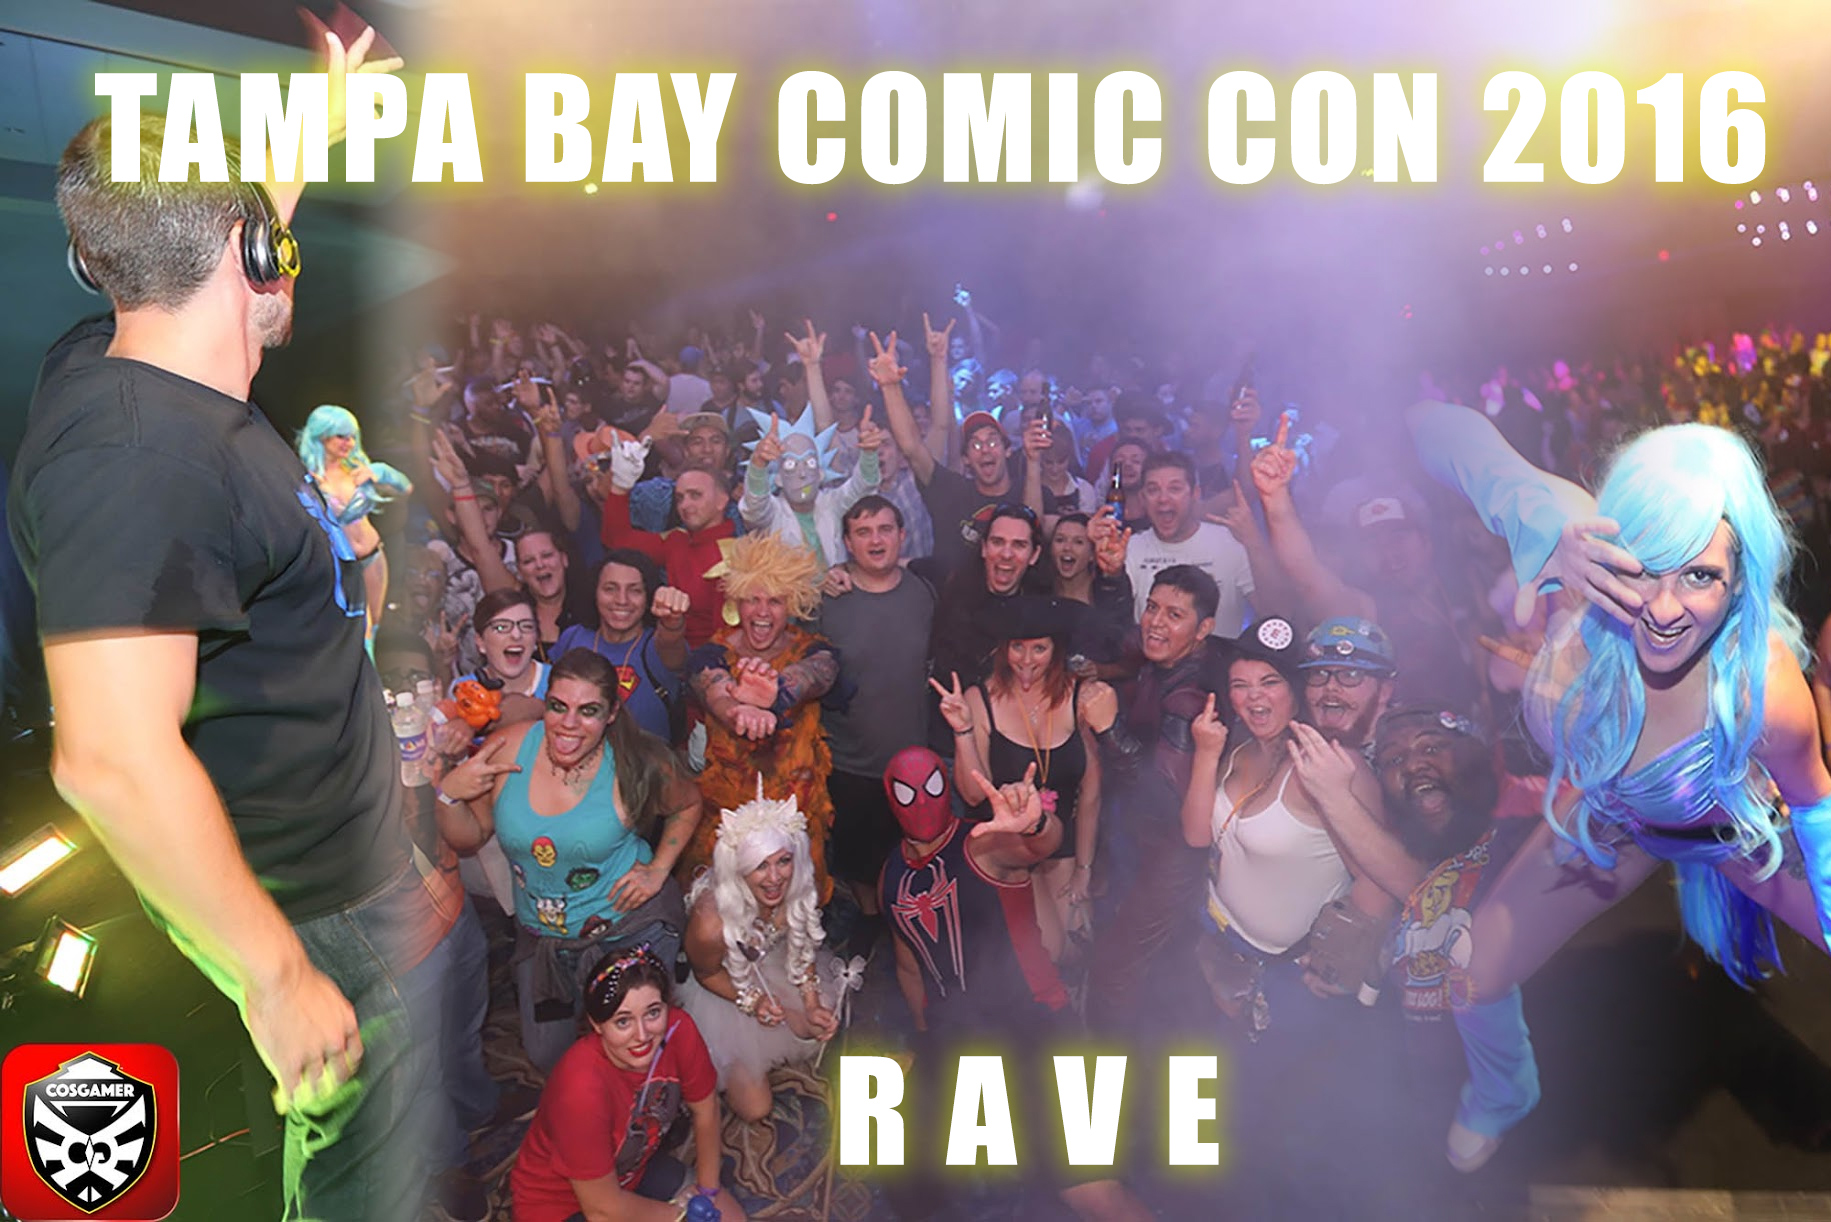 Tampa Bay Comic Con 2016 Rave Party | COSGAMER Blog